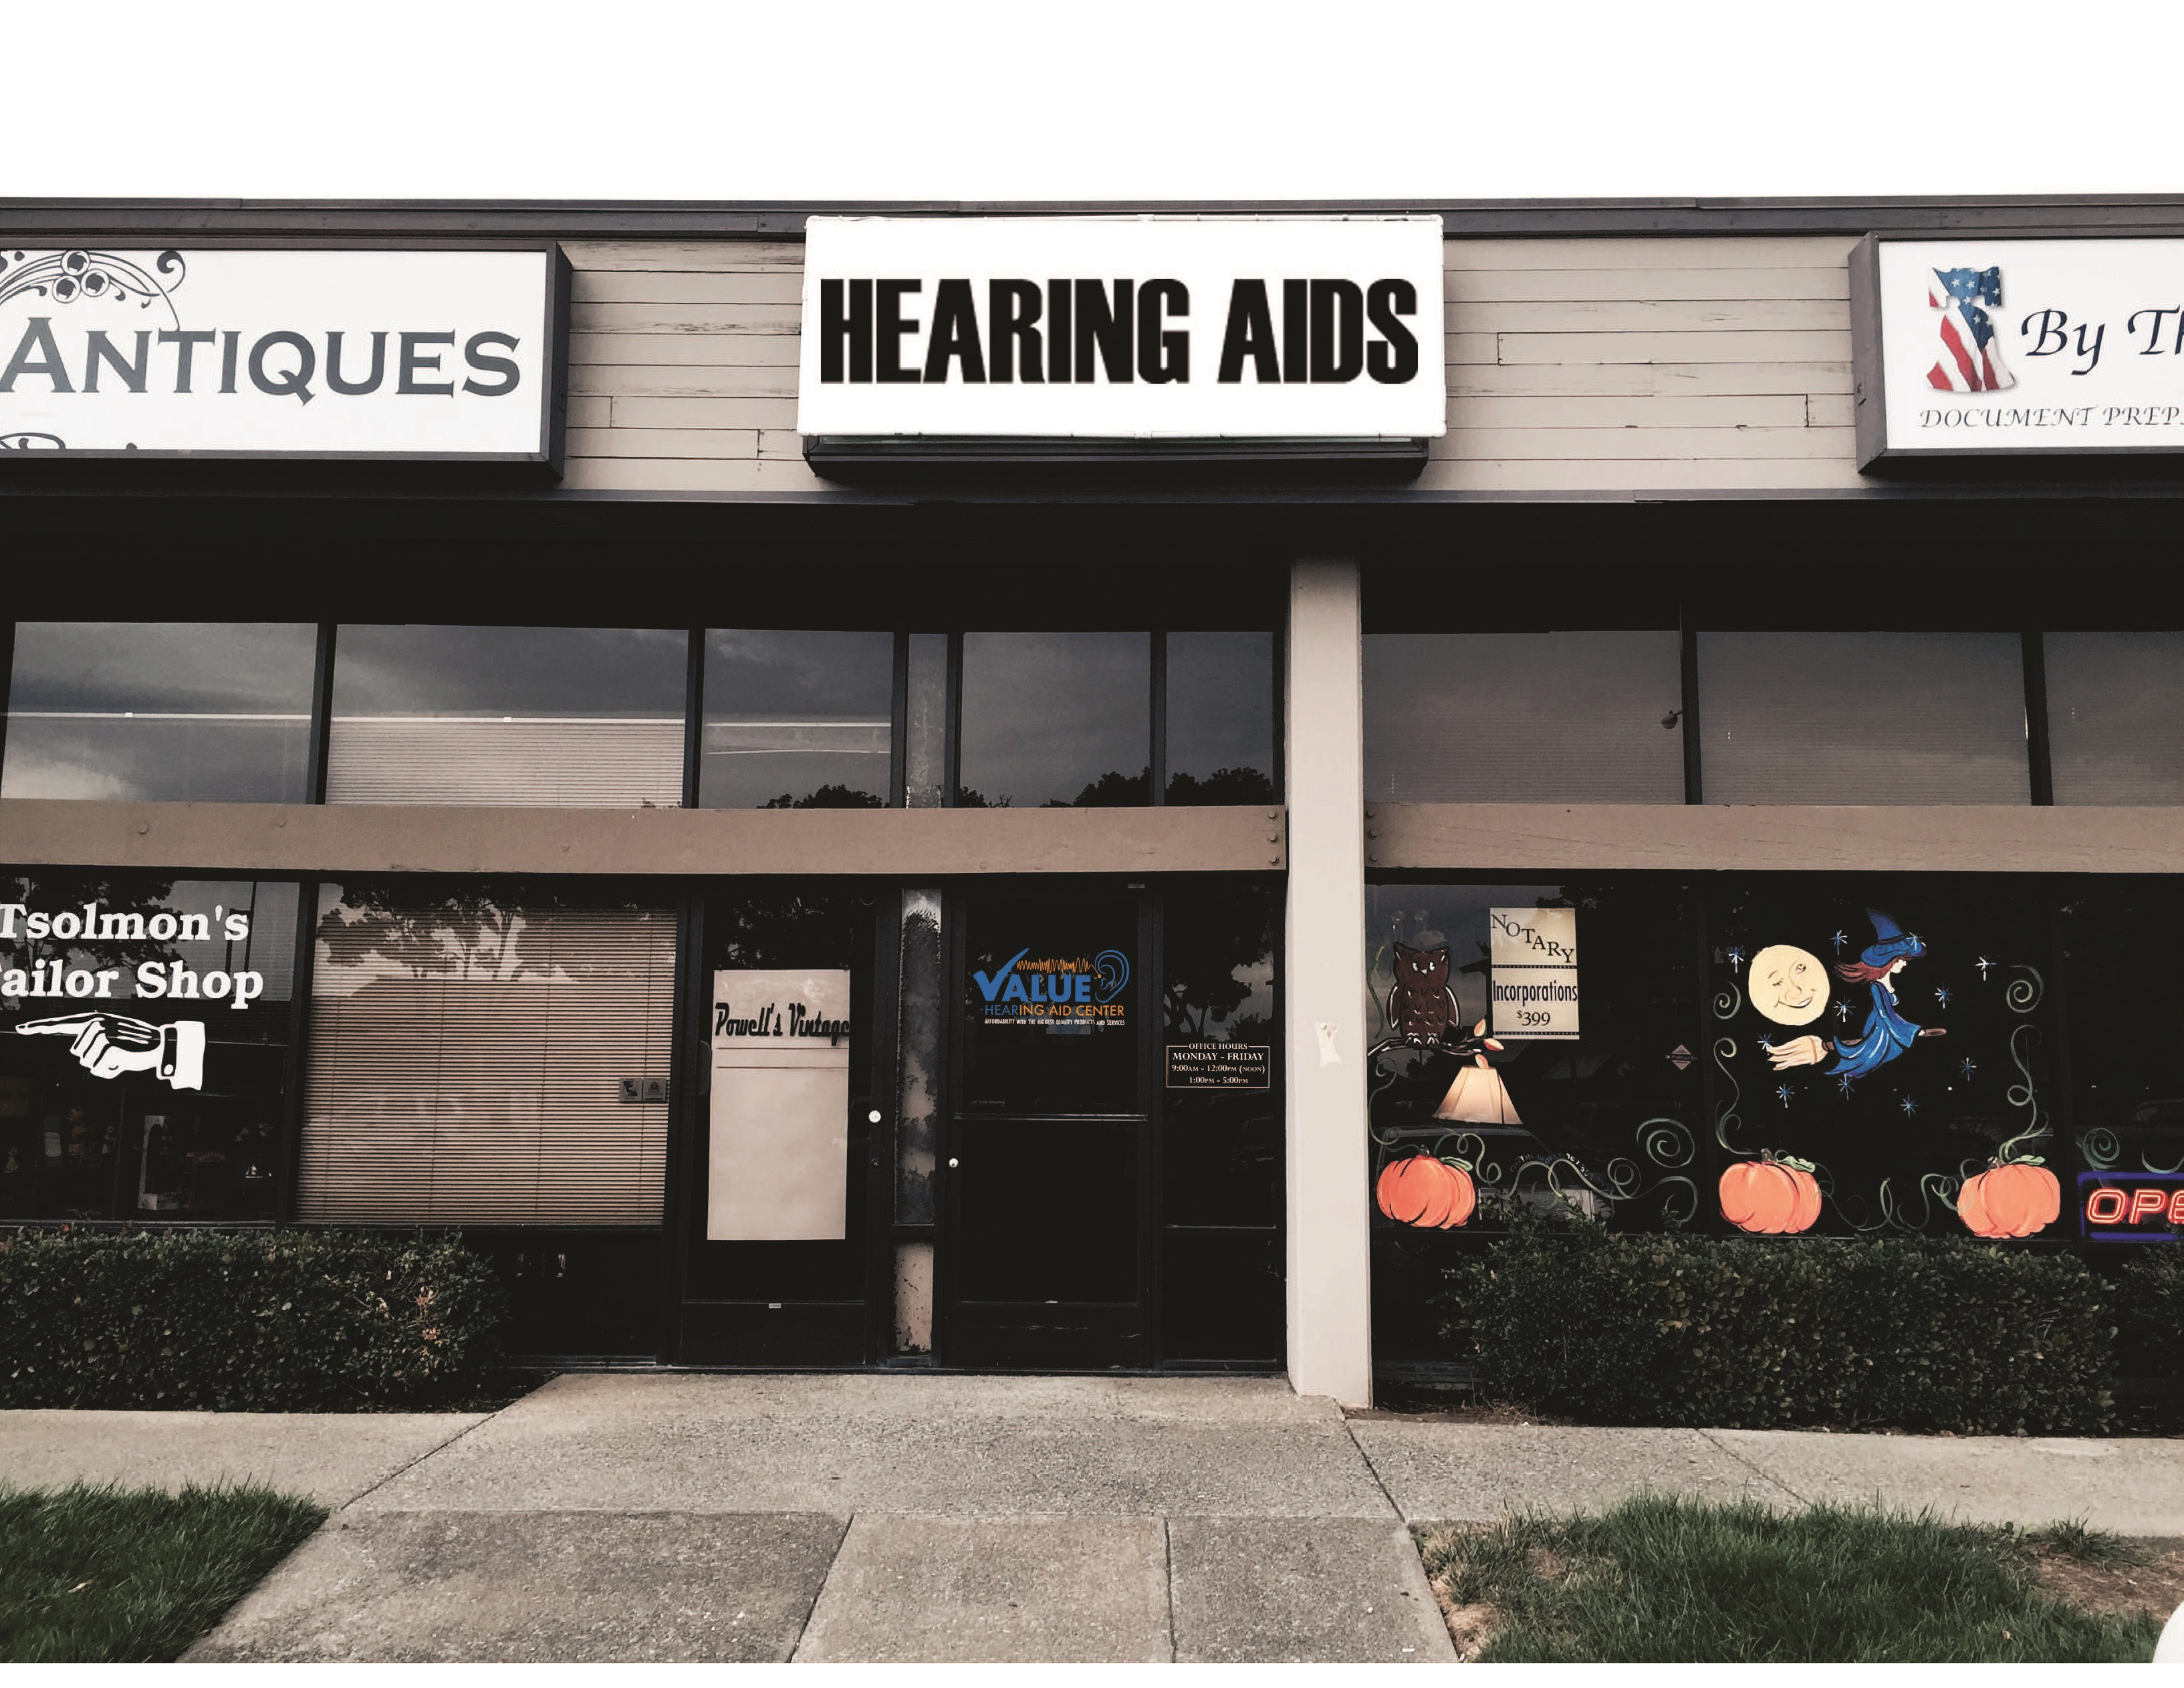 Value Hearing Aid Center - Fairfield Location